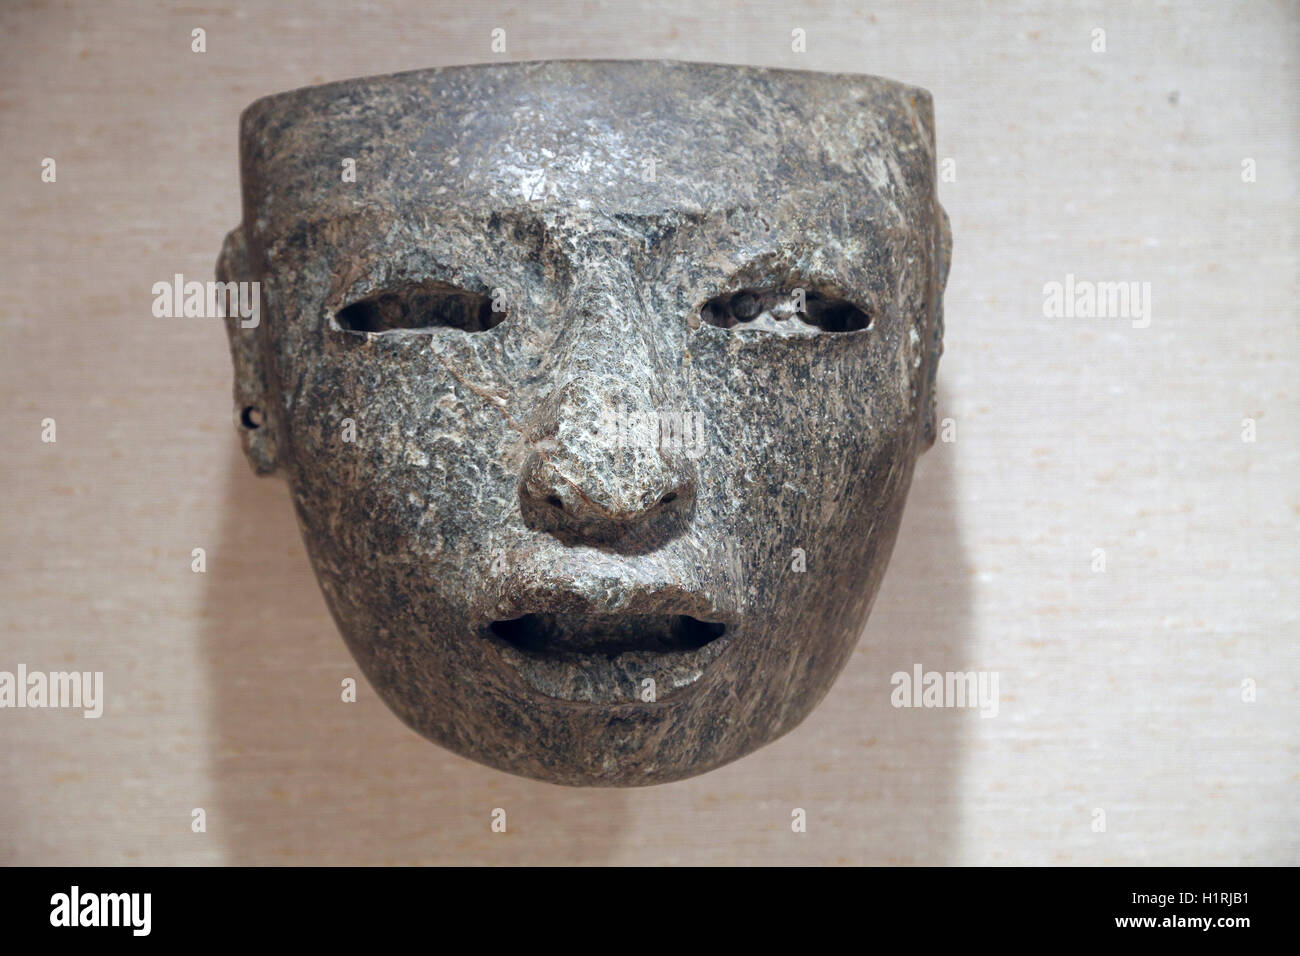 America. Mexico. Teothihuacan. Mask. 3rd-7th century. Greenstone. - Stock Image